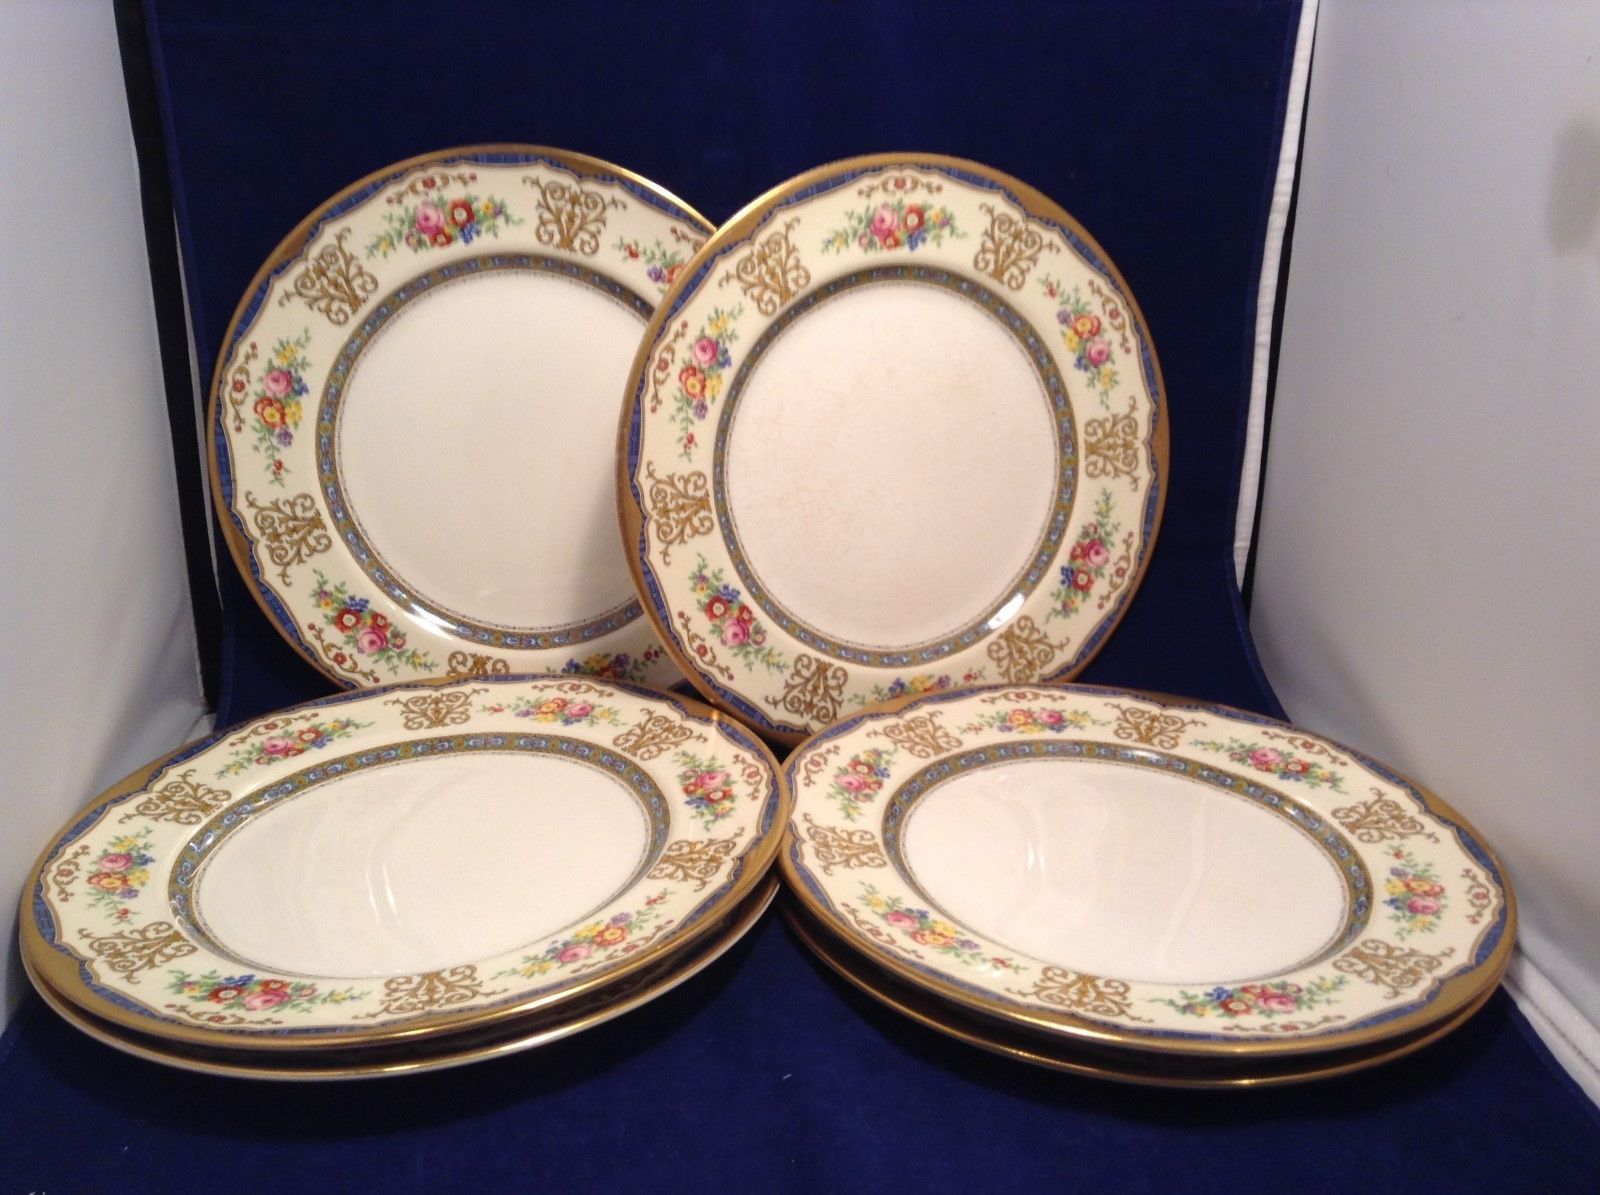 Antique Set of 6 Porcelain Plates by Pareek Johnson Bros England